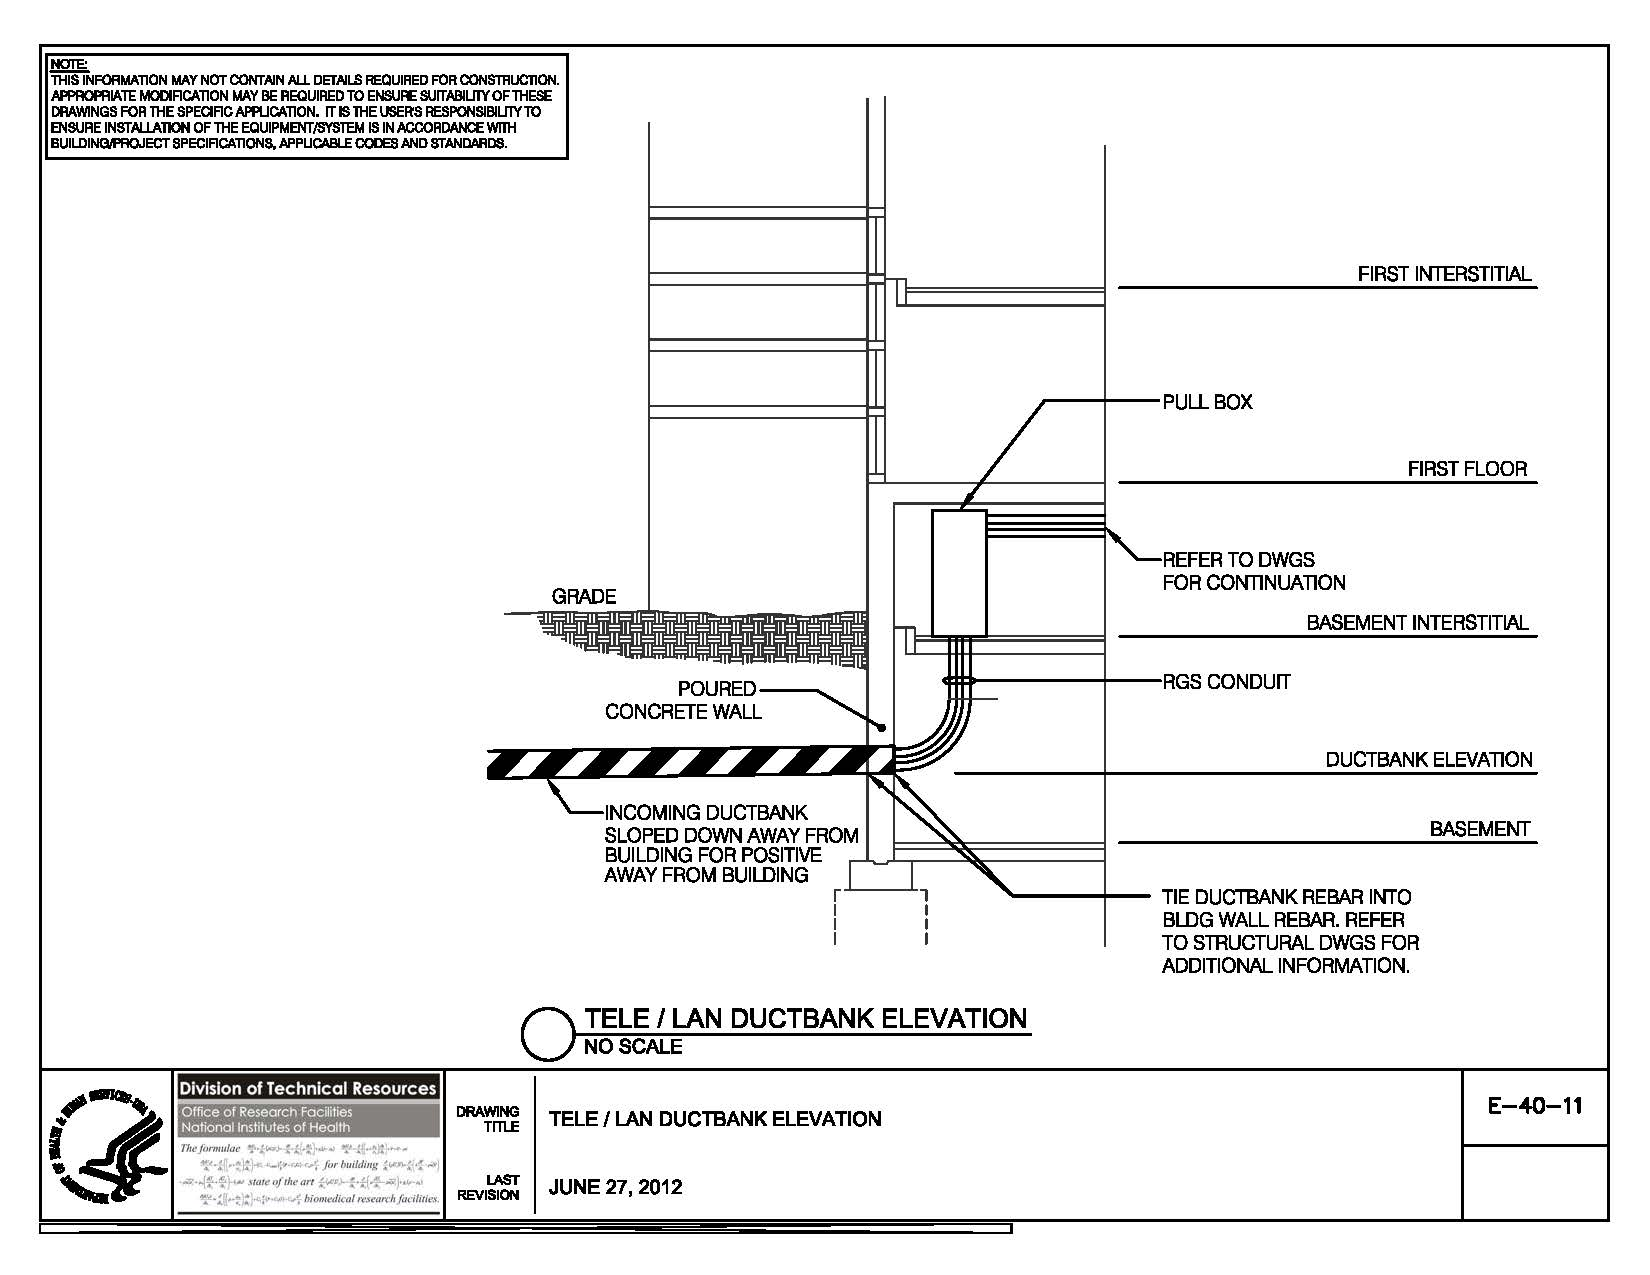 Nih Standard Cad Details E Wiring Diagram Symbols Pointing Down Thumbnail Of 40 11 Tele Lan Ductbank Elevation